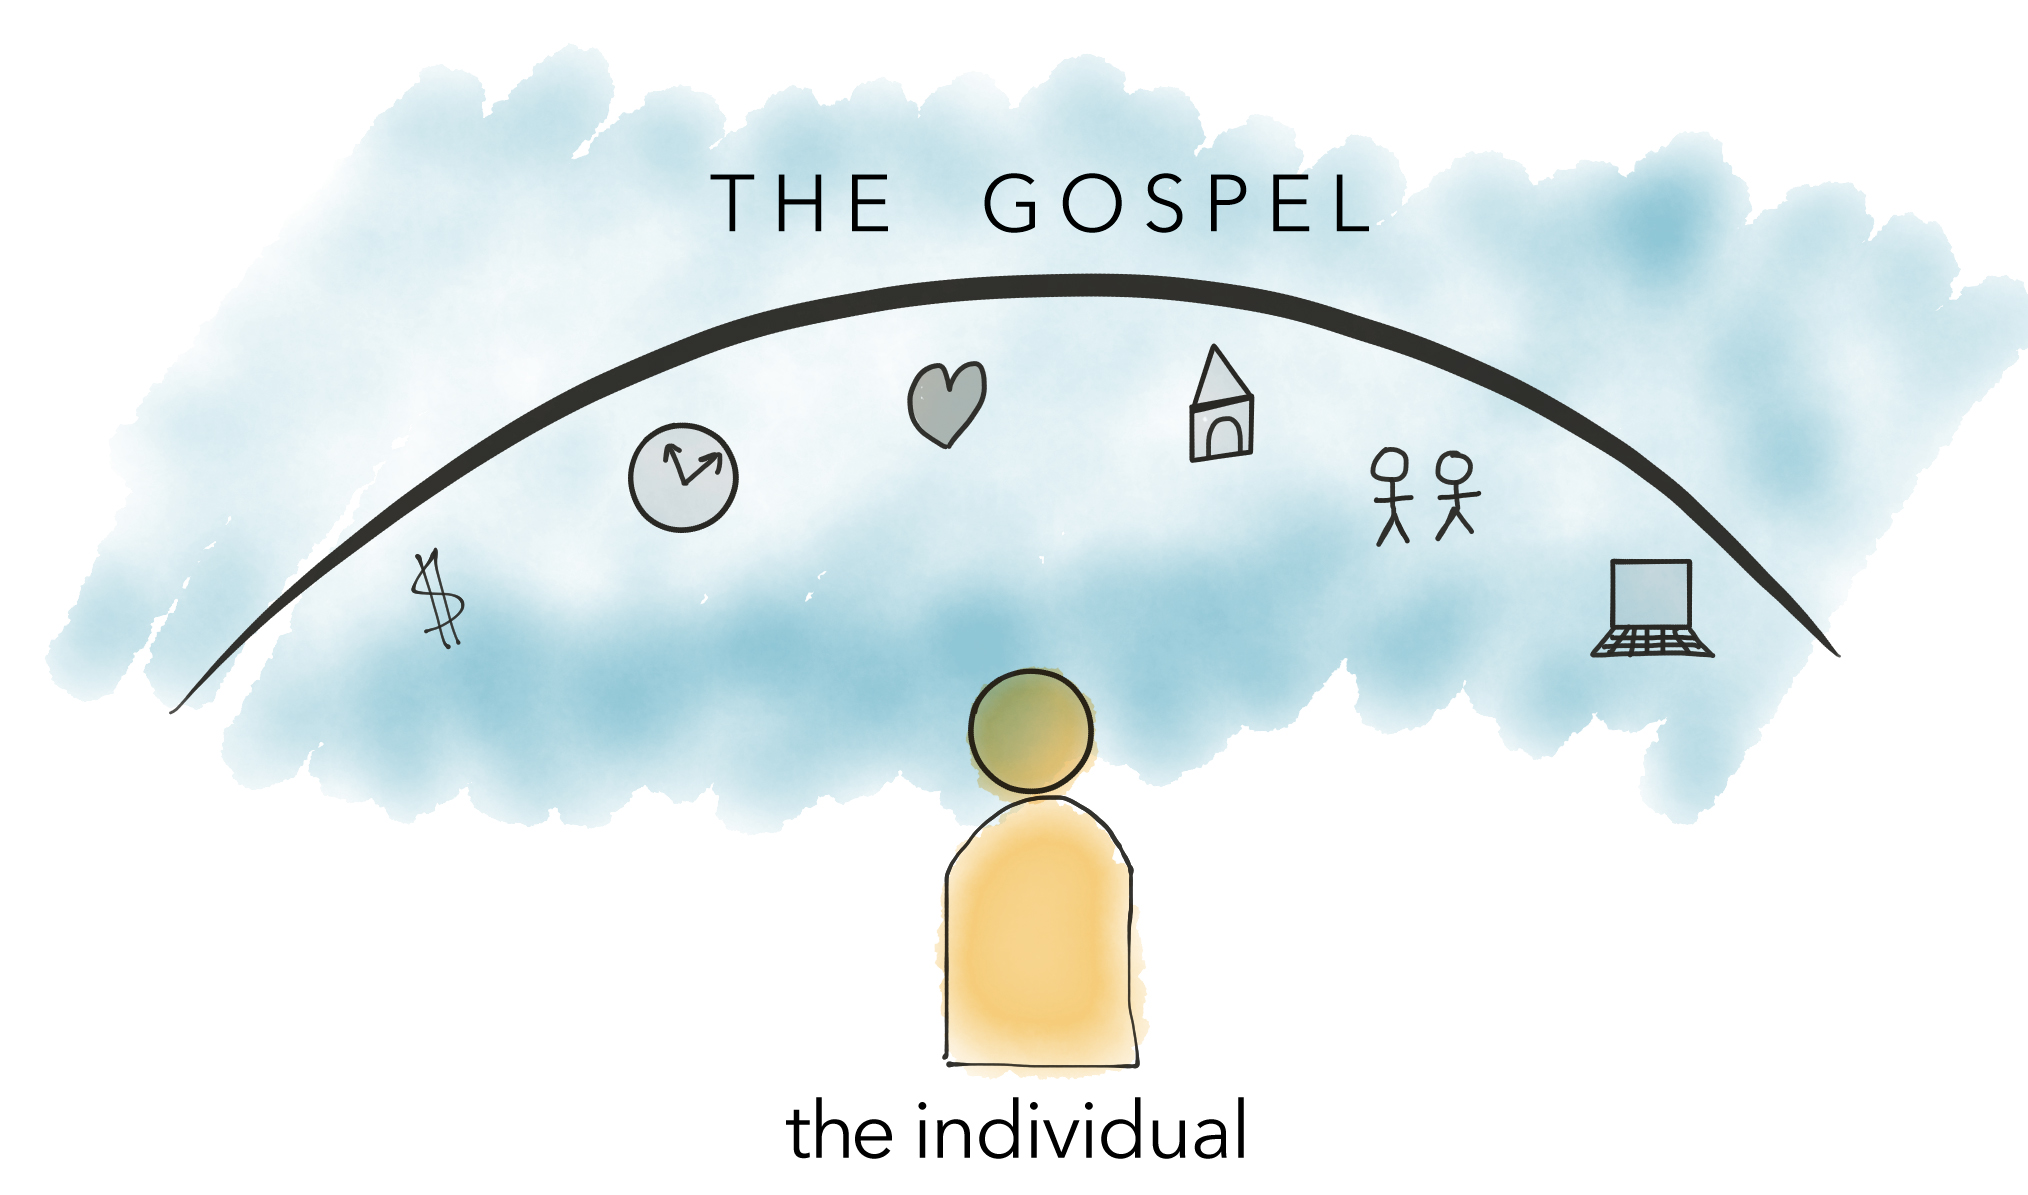 Putting all of ourselves in the story of the gospel